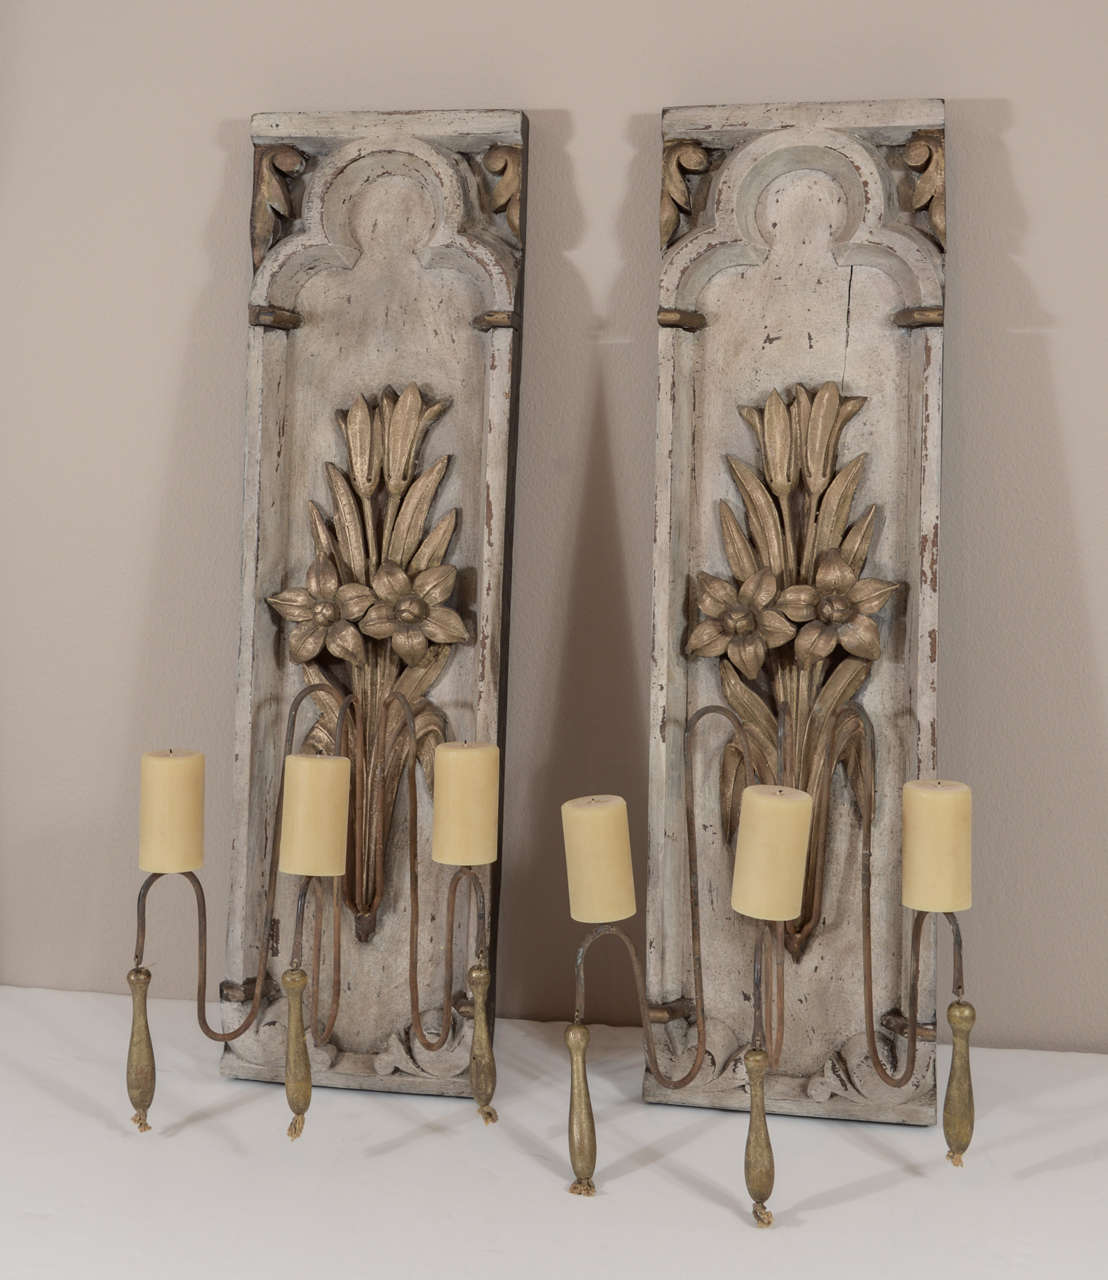 19th Century French Candle Sconces at 1stdibs